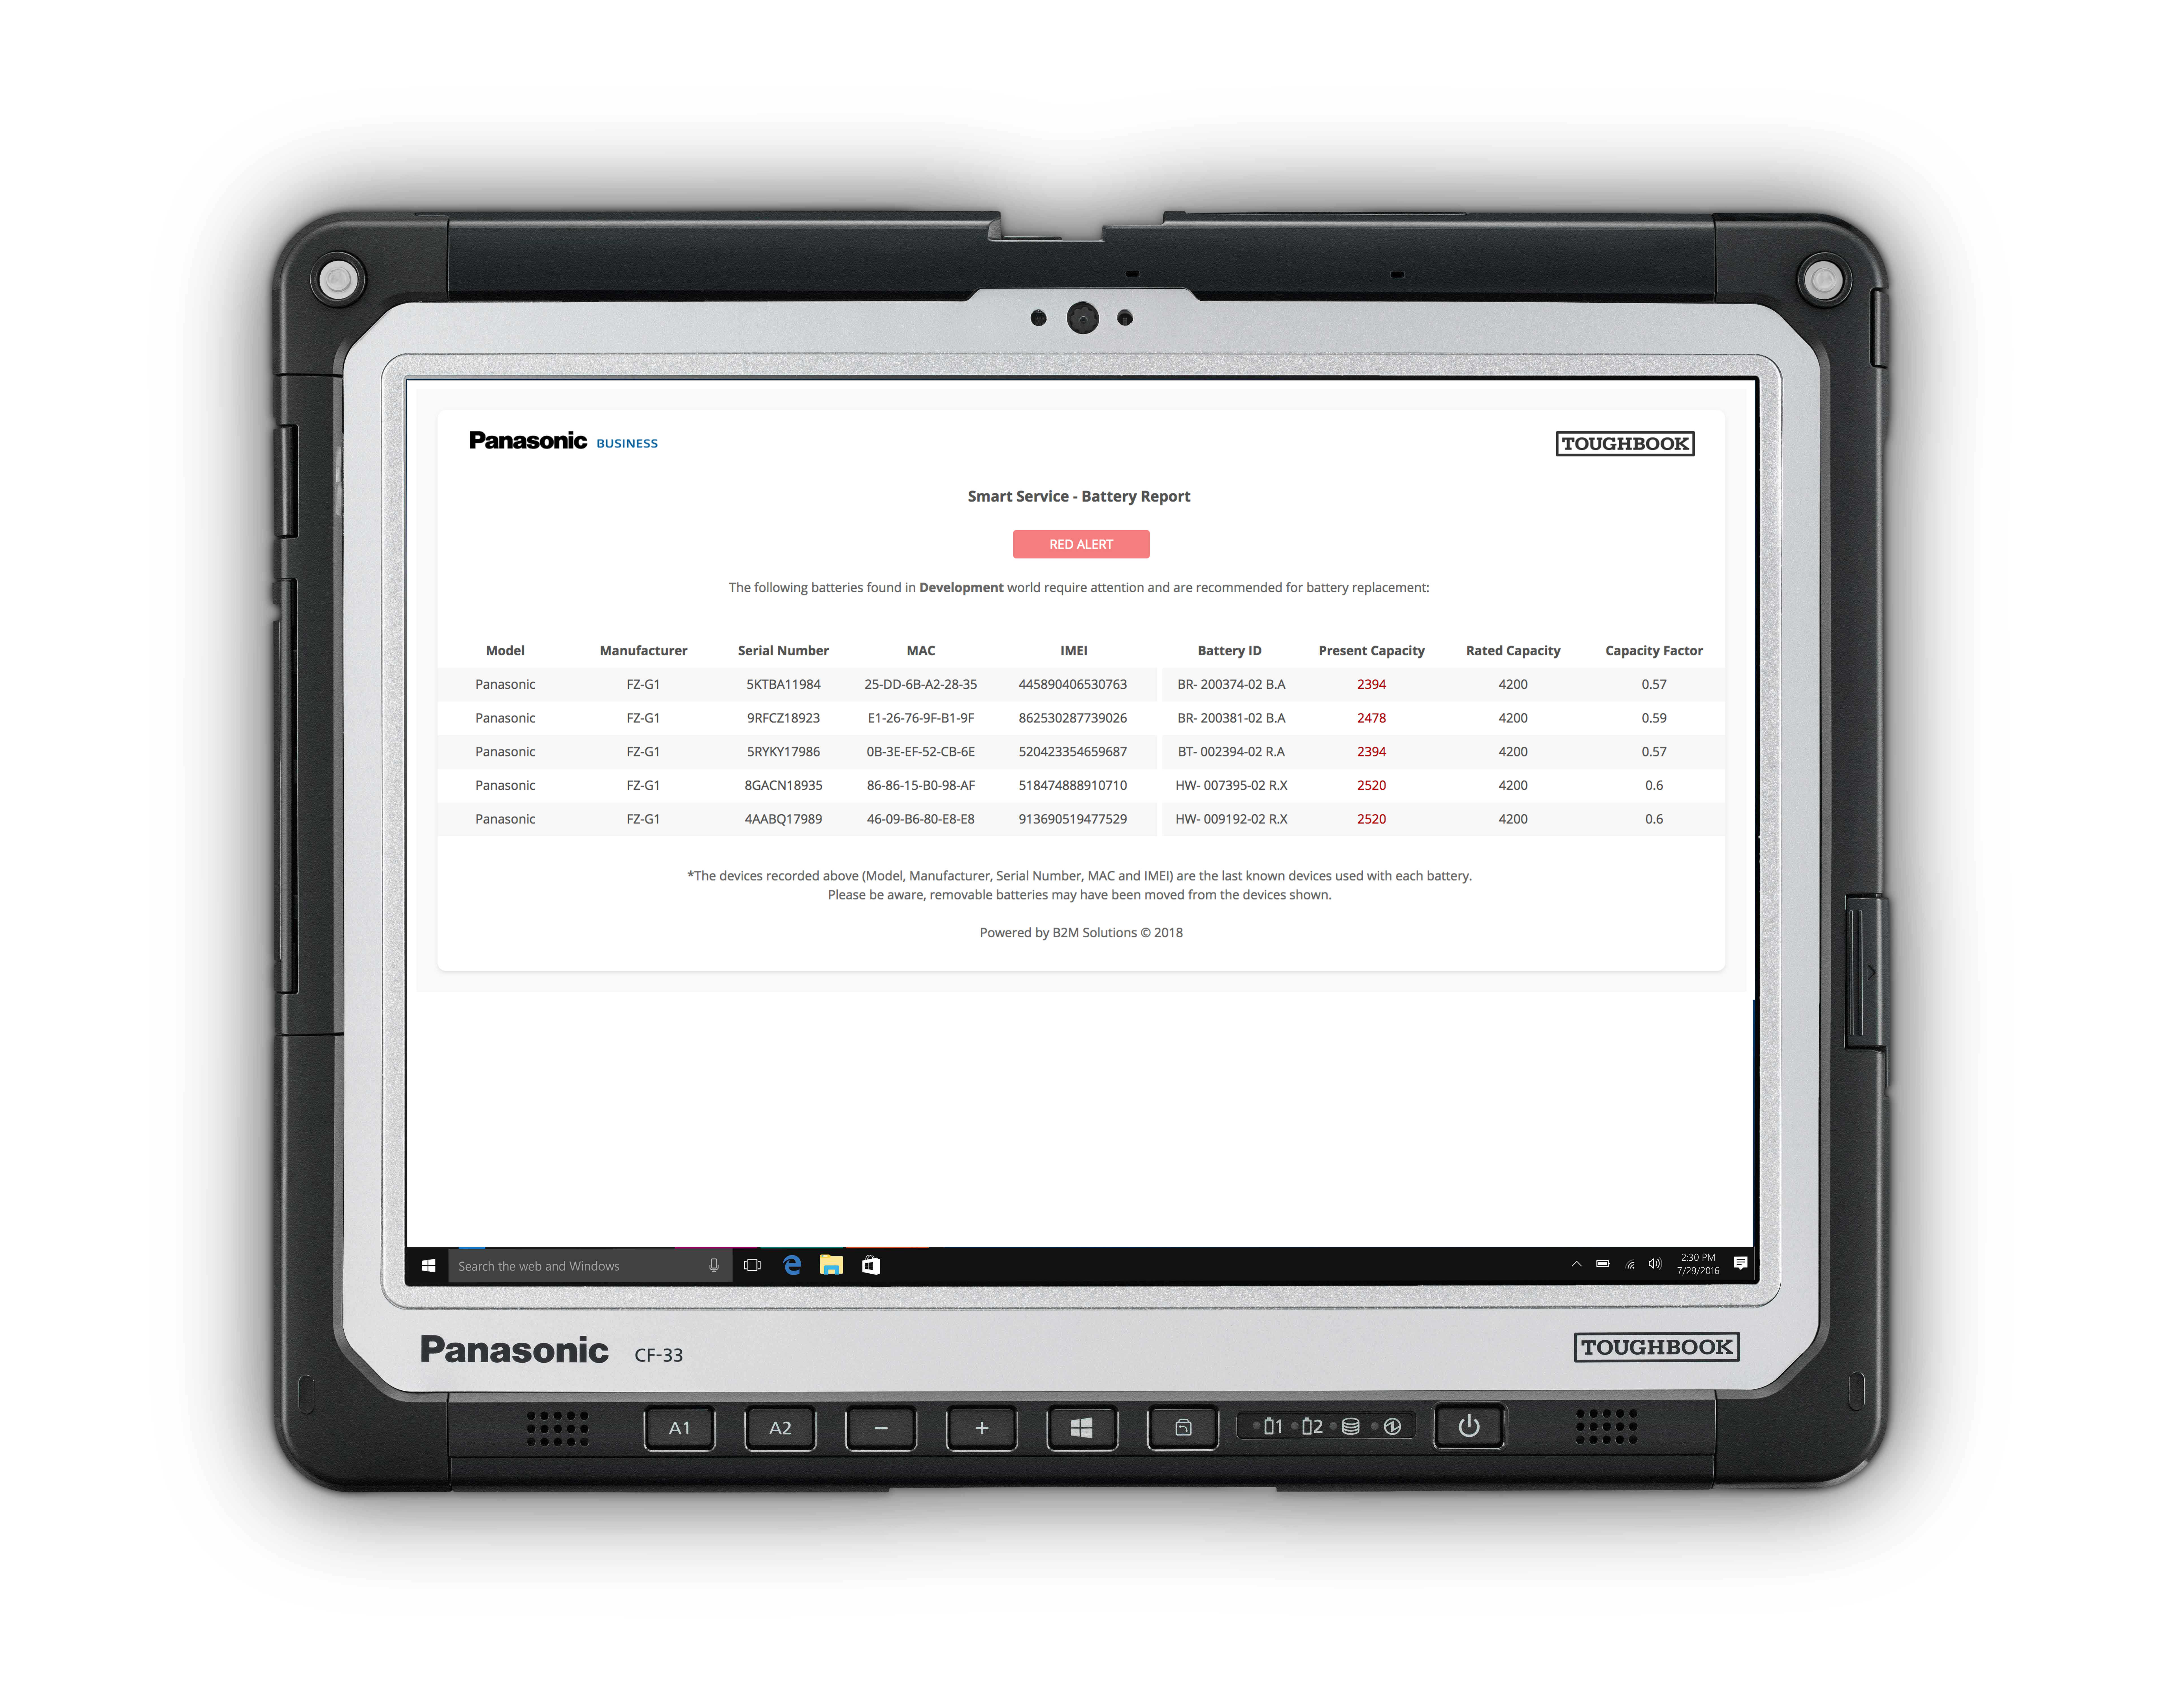 CF-33 tablet with Smart Service Lite Dashboard